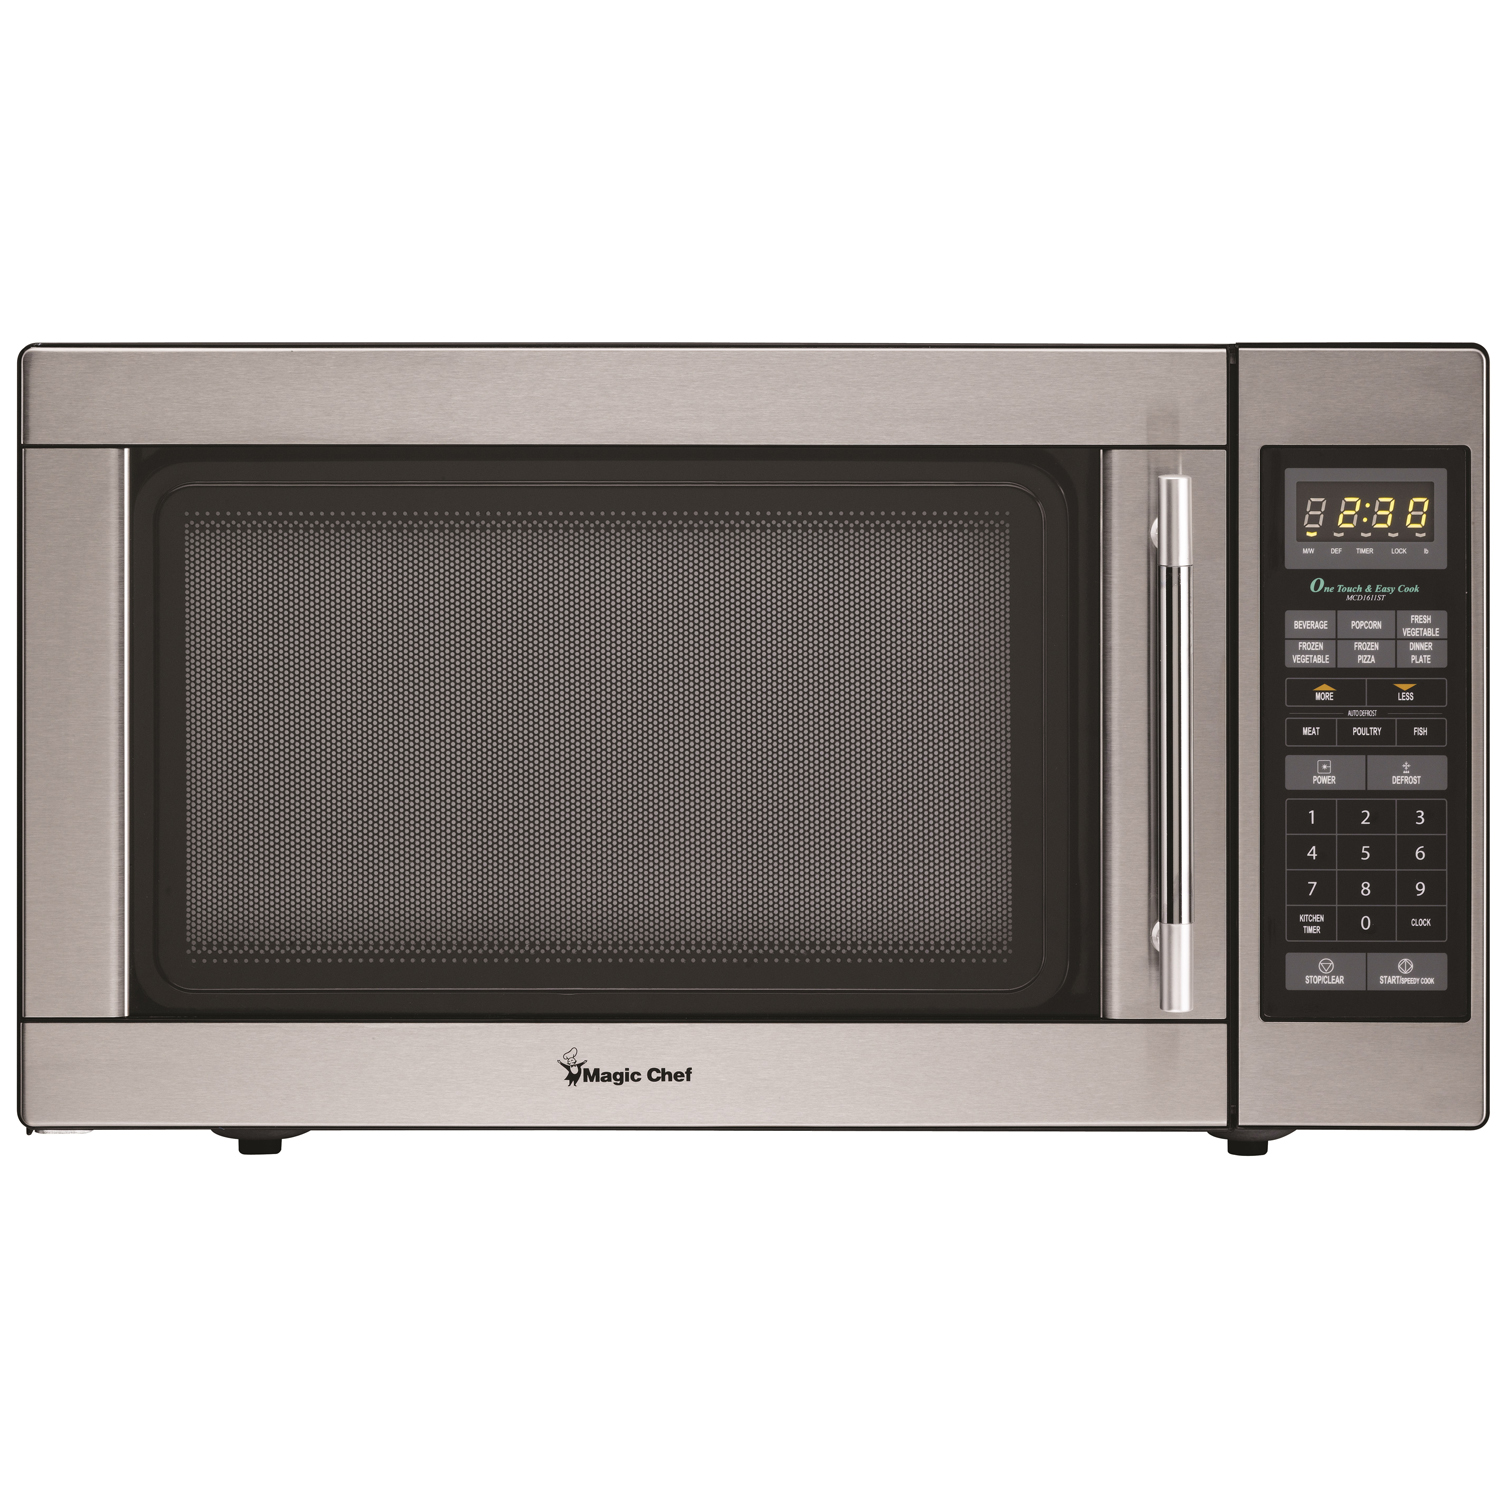 cu. ft. Countertop Microwave Oven - Microwaves - Kitchen